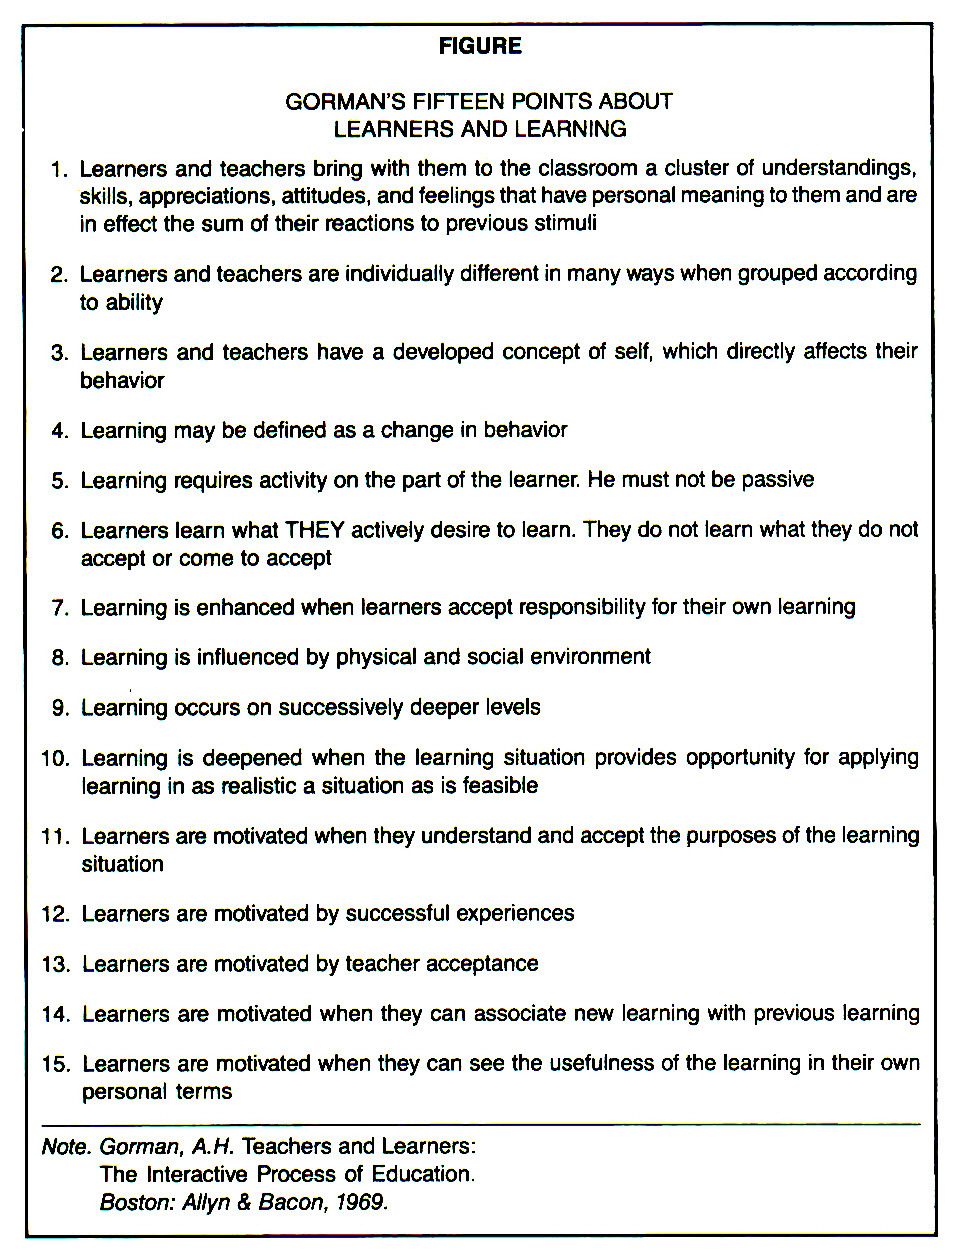 FIGUREGORMAN'S FIFTEEN POINTS ABOUT LEARNERS AND LEARNING